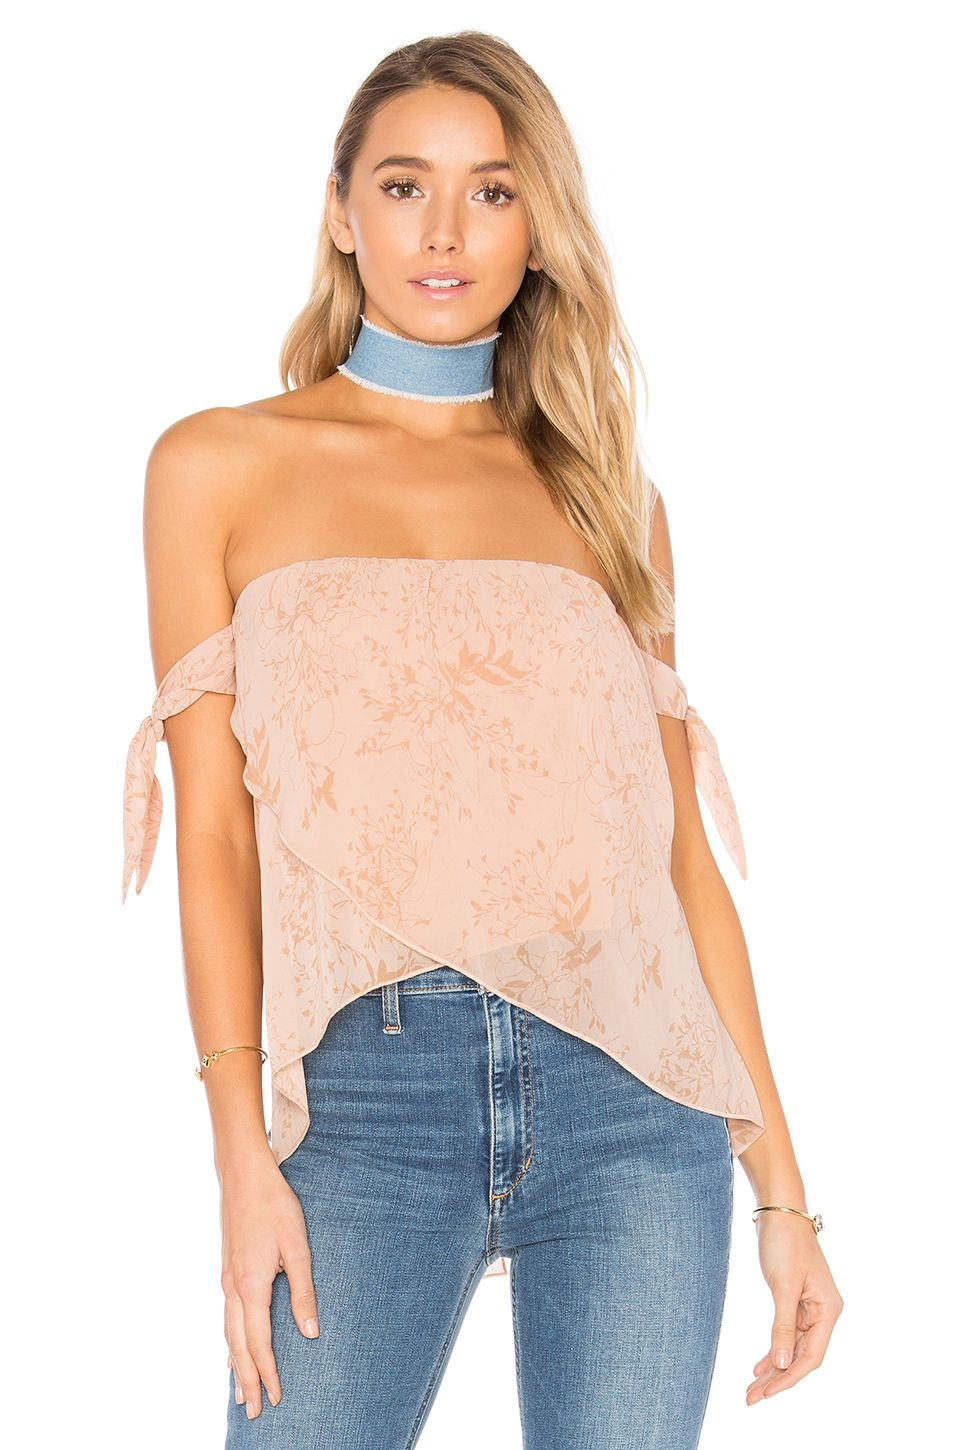 c674e241308 THE JETSET DIARIES Sierra Top in Nude Floral | My online closet ...